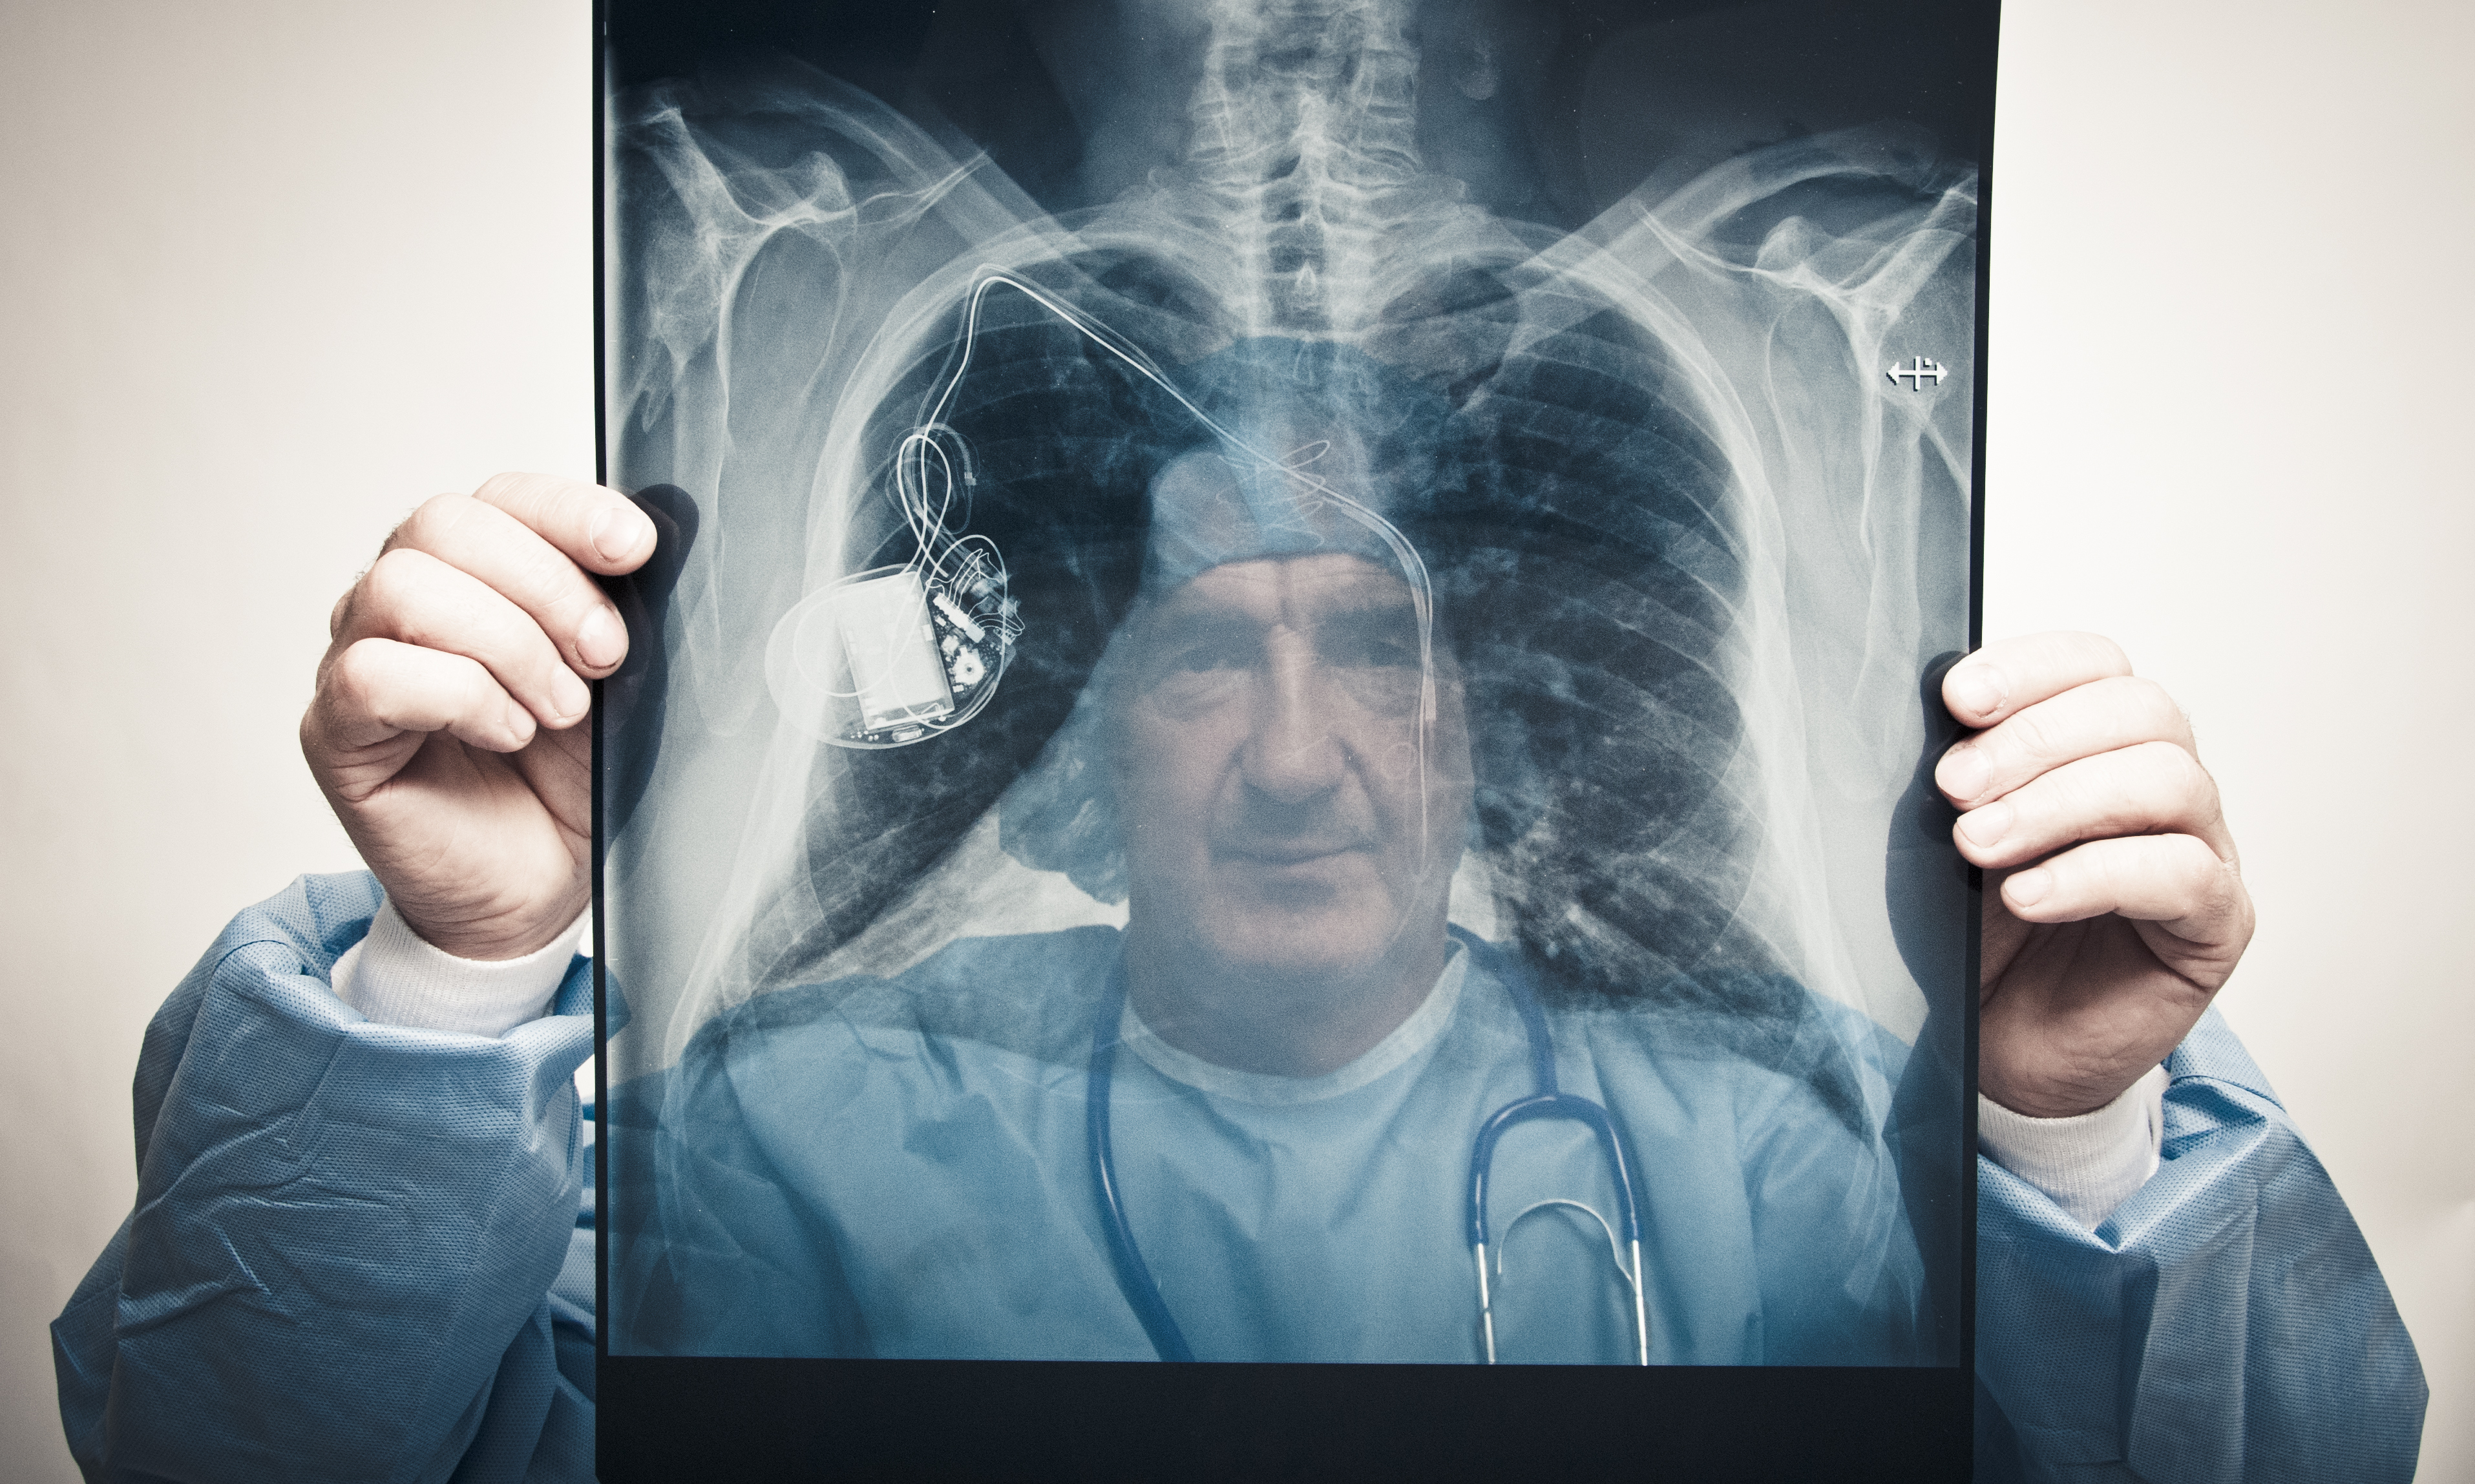 Doctor examining pacemaker on chest x-ray